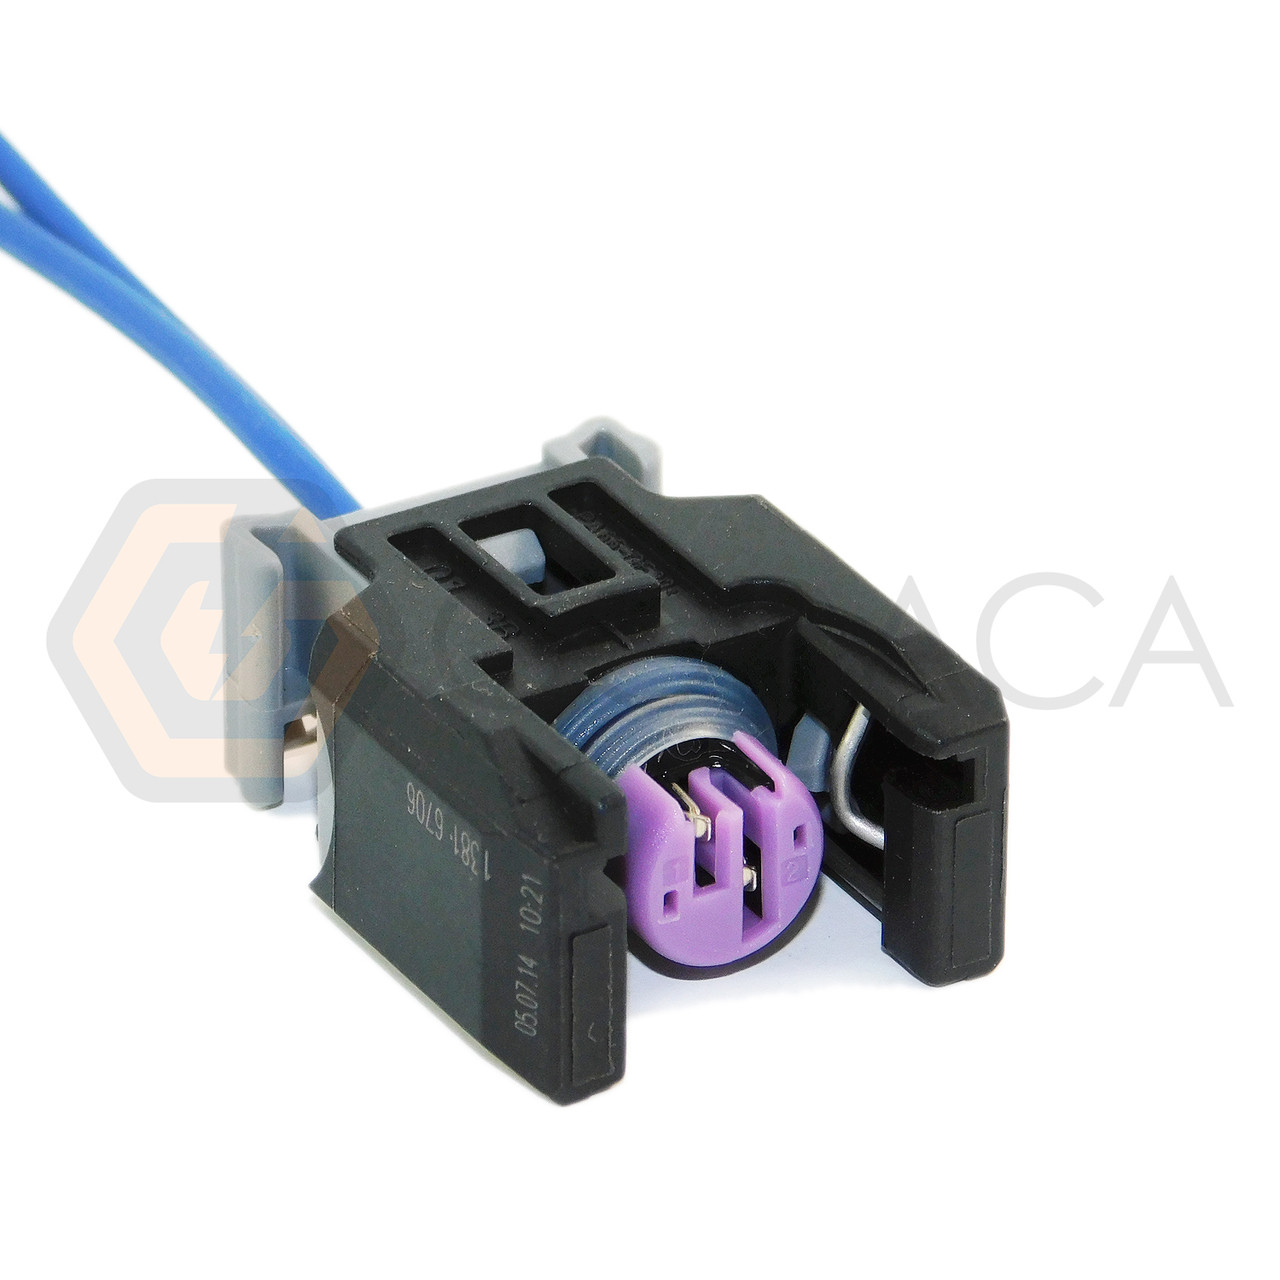 1x connector 2 way 2 pin for fuel injector 13816706 delphi godaca llc  [ 1280 x 1280 Pixel ]